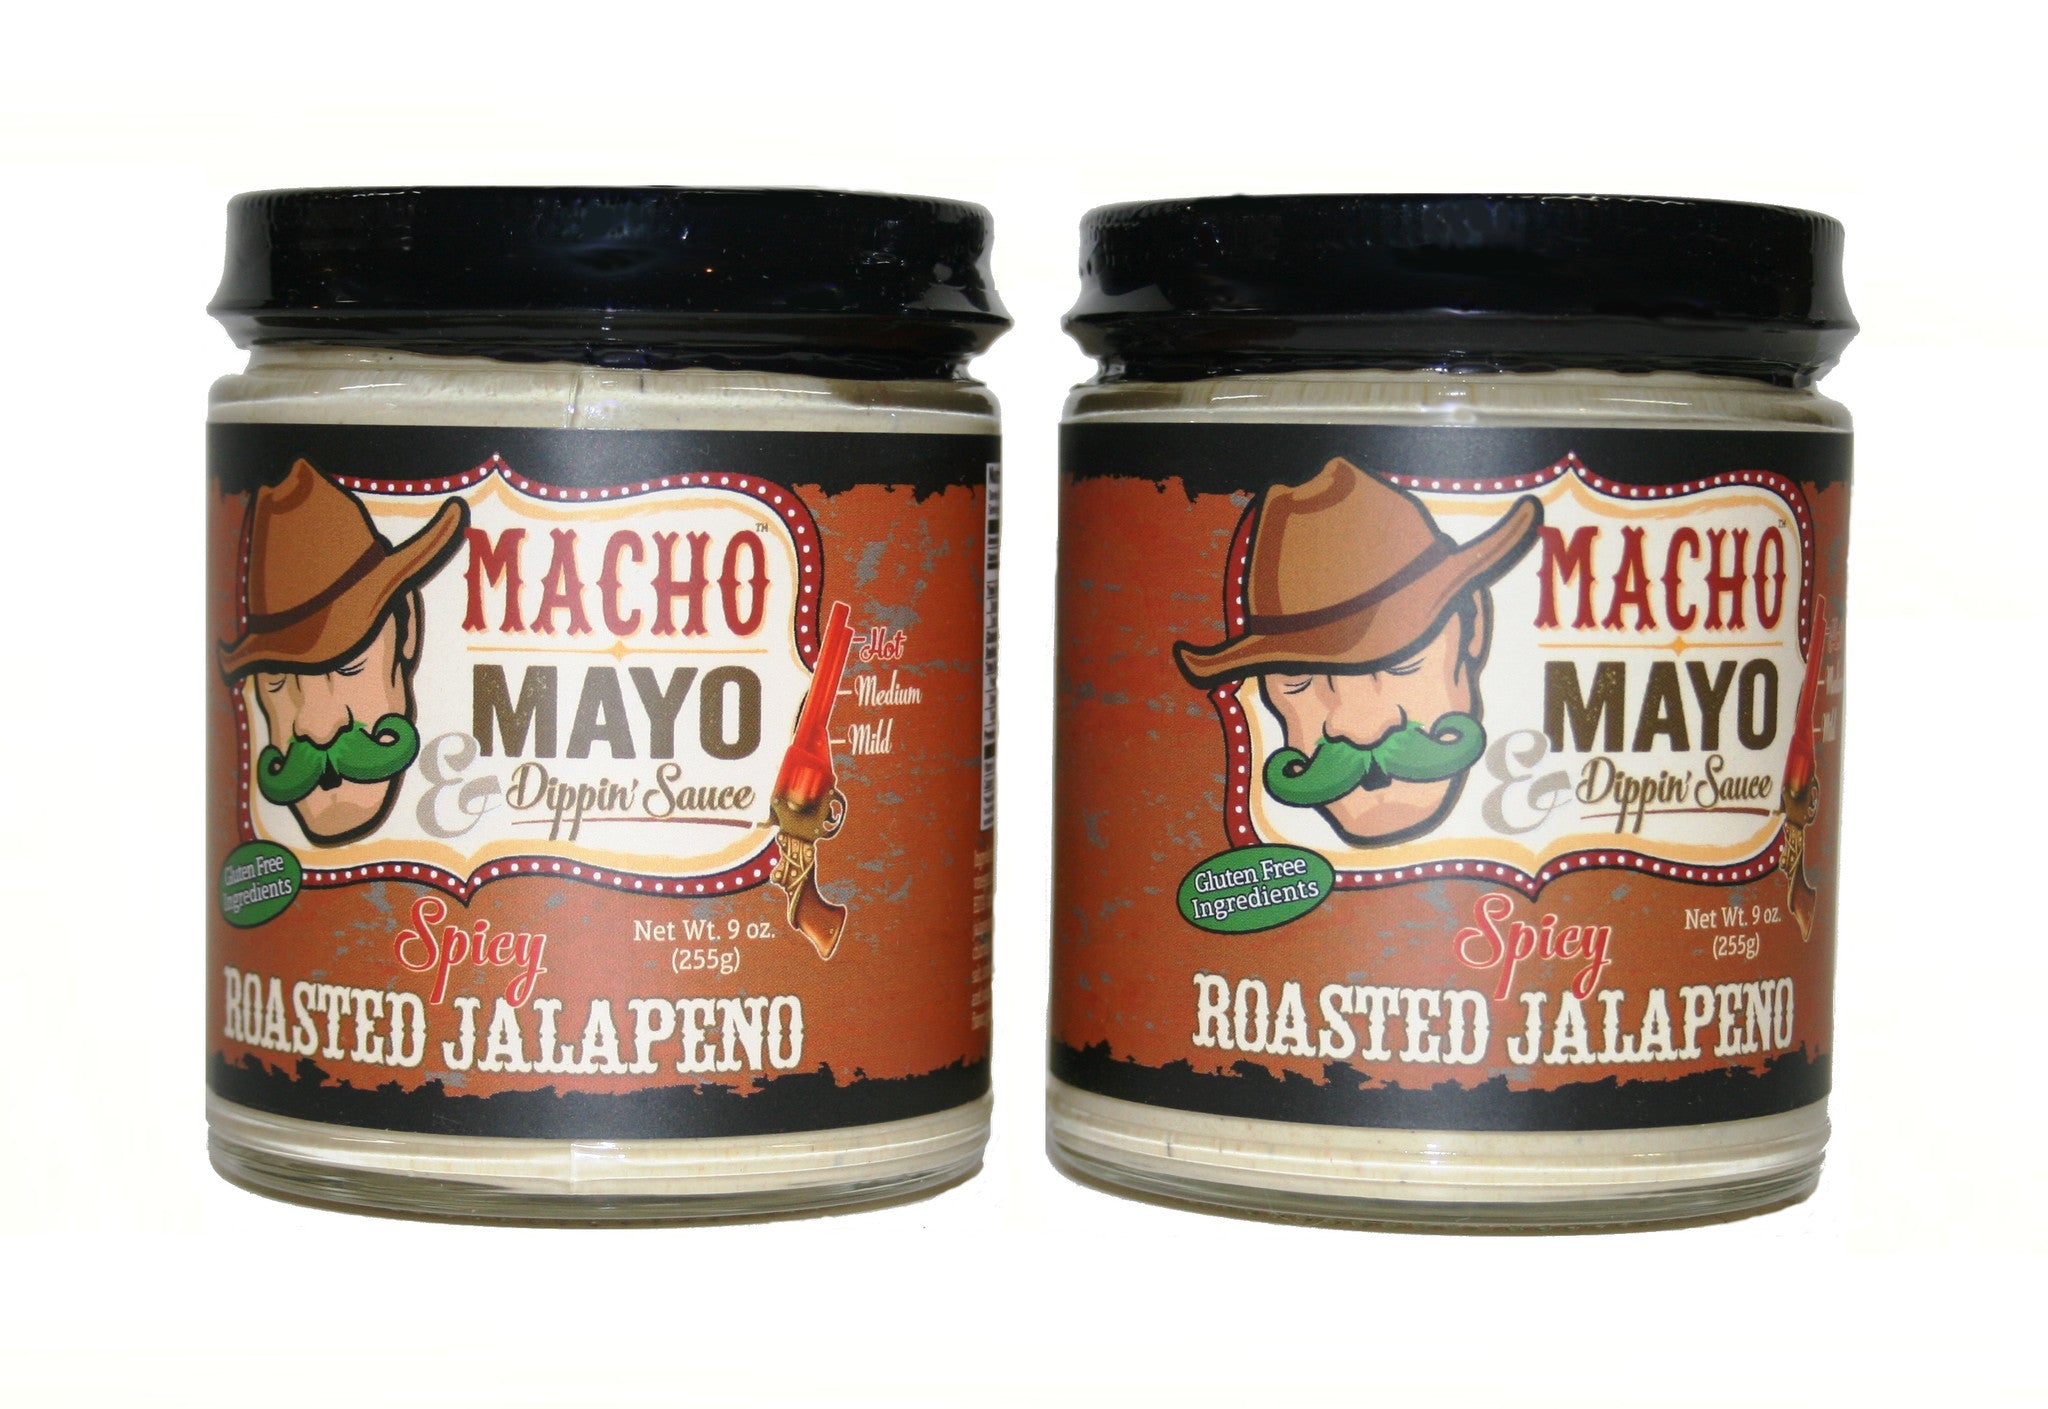 Macho Mayo Spicy (2 Pack)